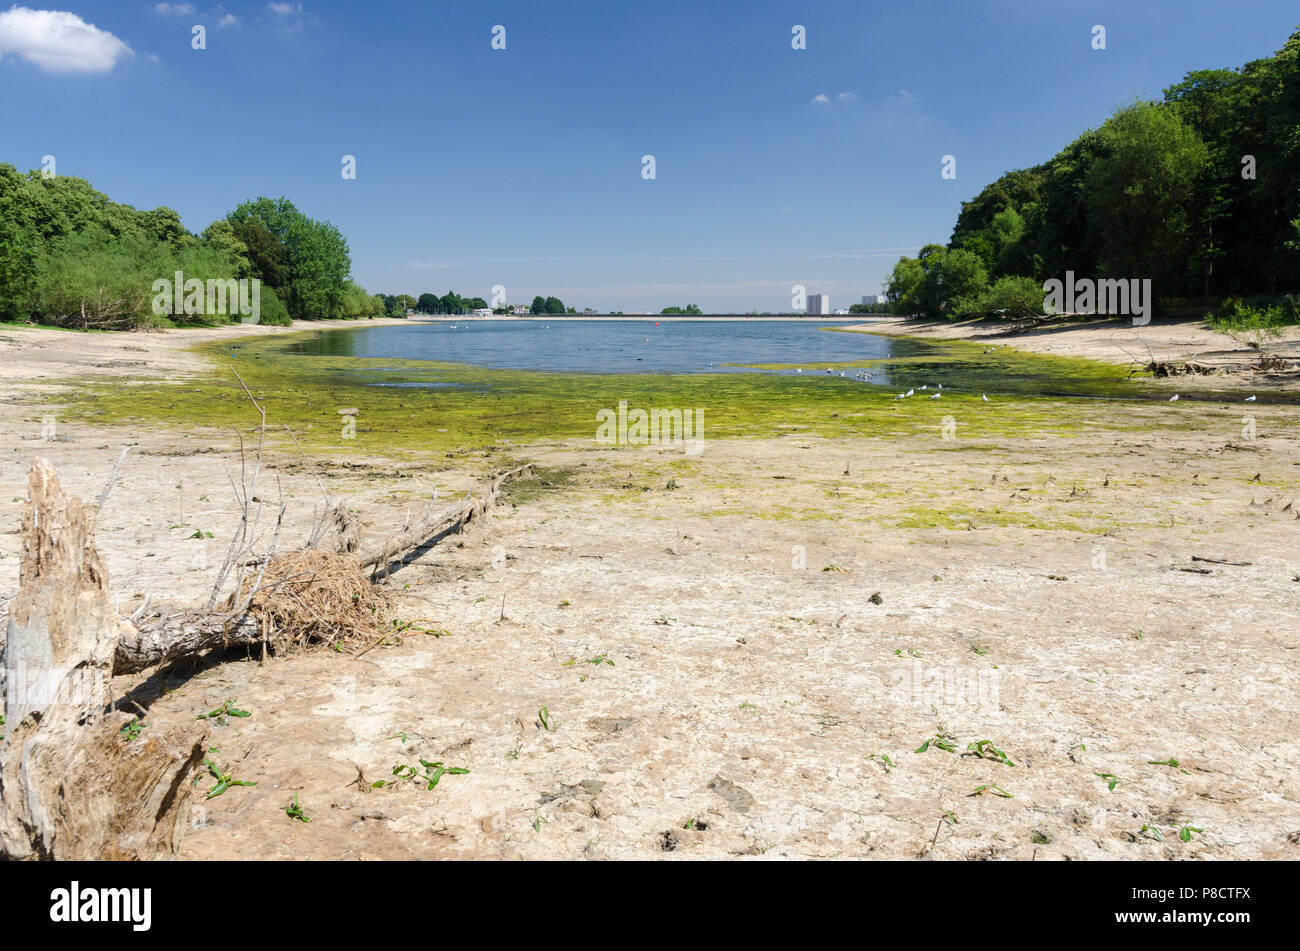 Edgbaston,Birmingham, UK. 11th July 2018. The continued dry weather in Birmingham has caused very low water levels at Edgbaston Reservoir which feeds the canal network. Credit: Nick Maslen/Alamy Live News Stock Photo